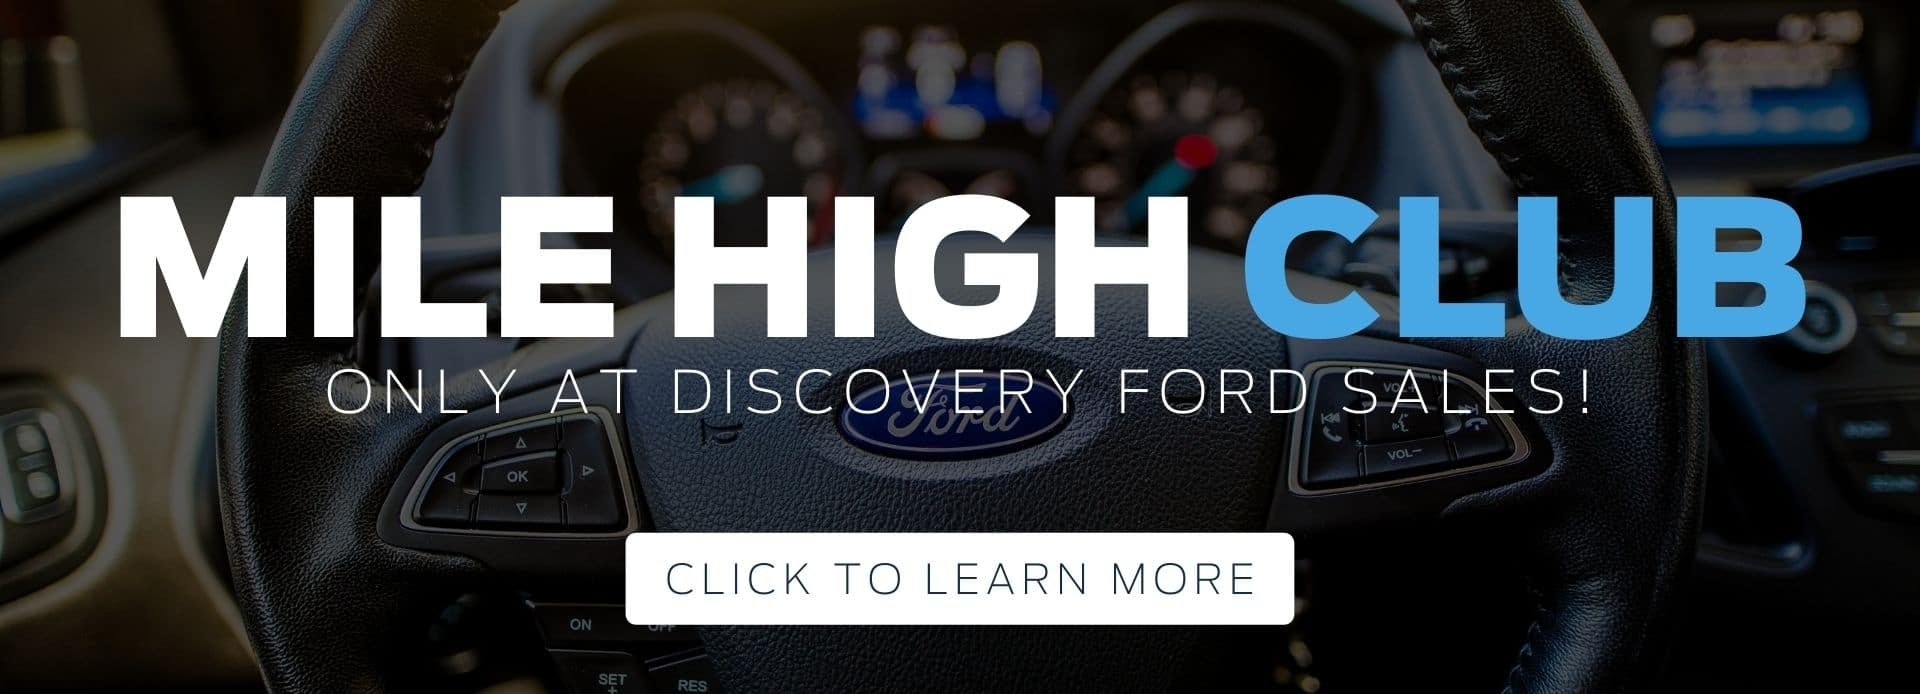 Mile High Club at Discovery Ford Sales